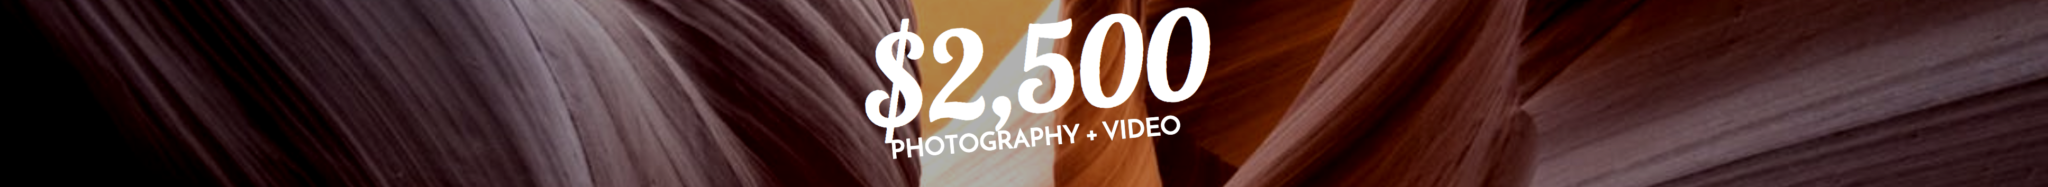 utah wedding videography prices